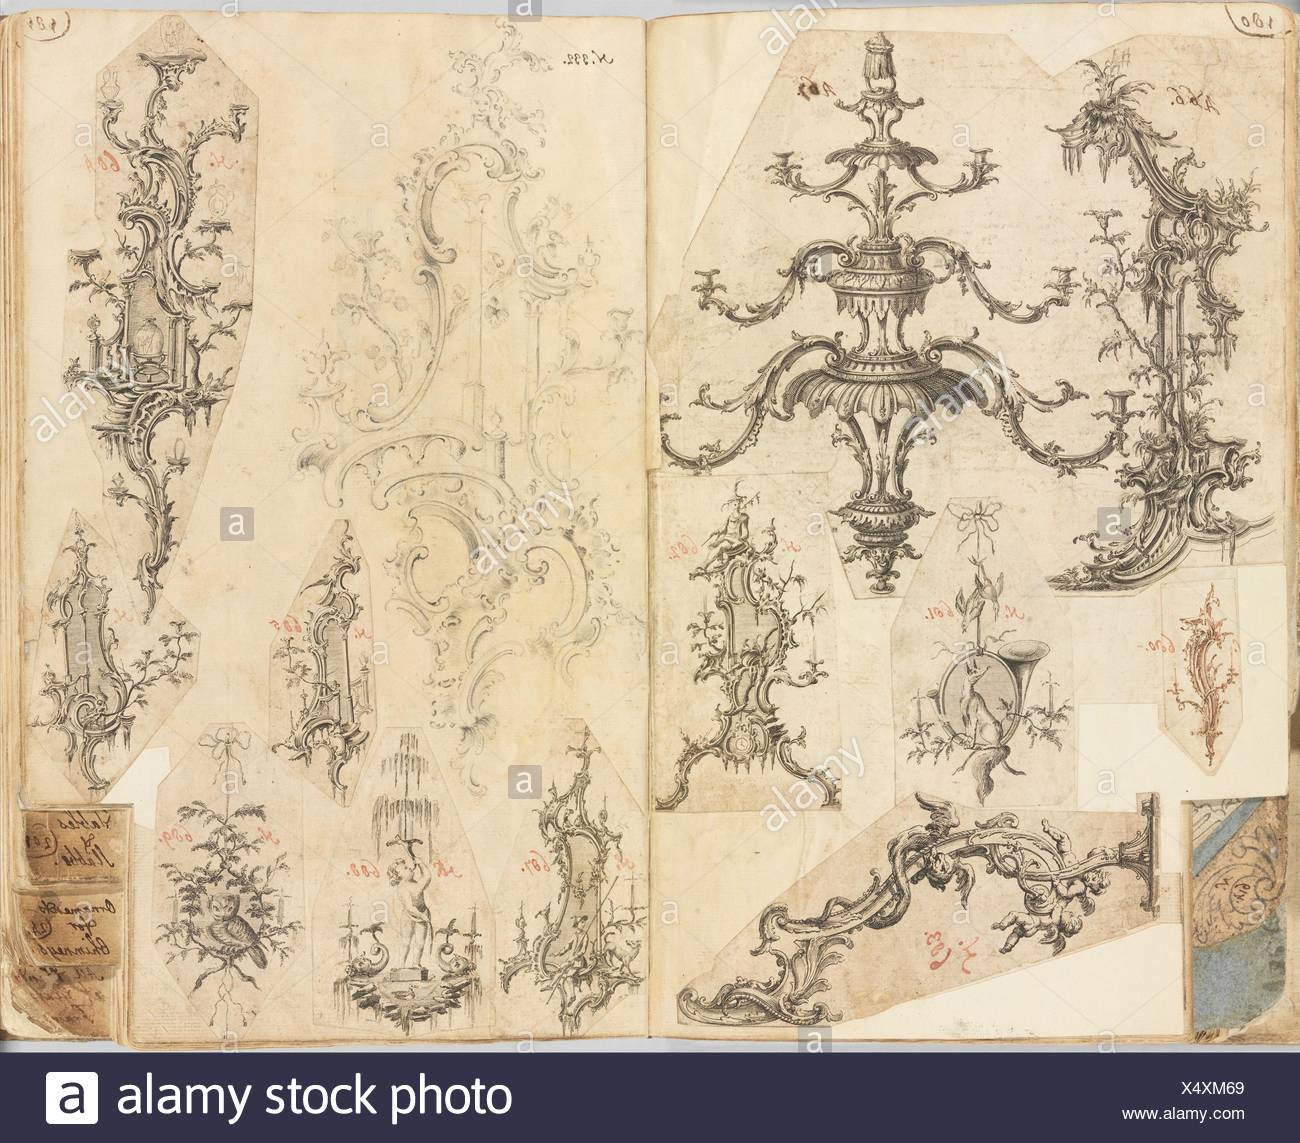 Scrapbook of Working Designs. Artist: Gideon Saint (British, London 1729-1799 Kent); Date: ca. 1760; Medium: Pen and ink, engraving and etching; - Stock Image